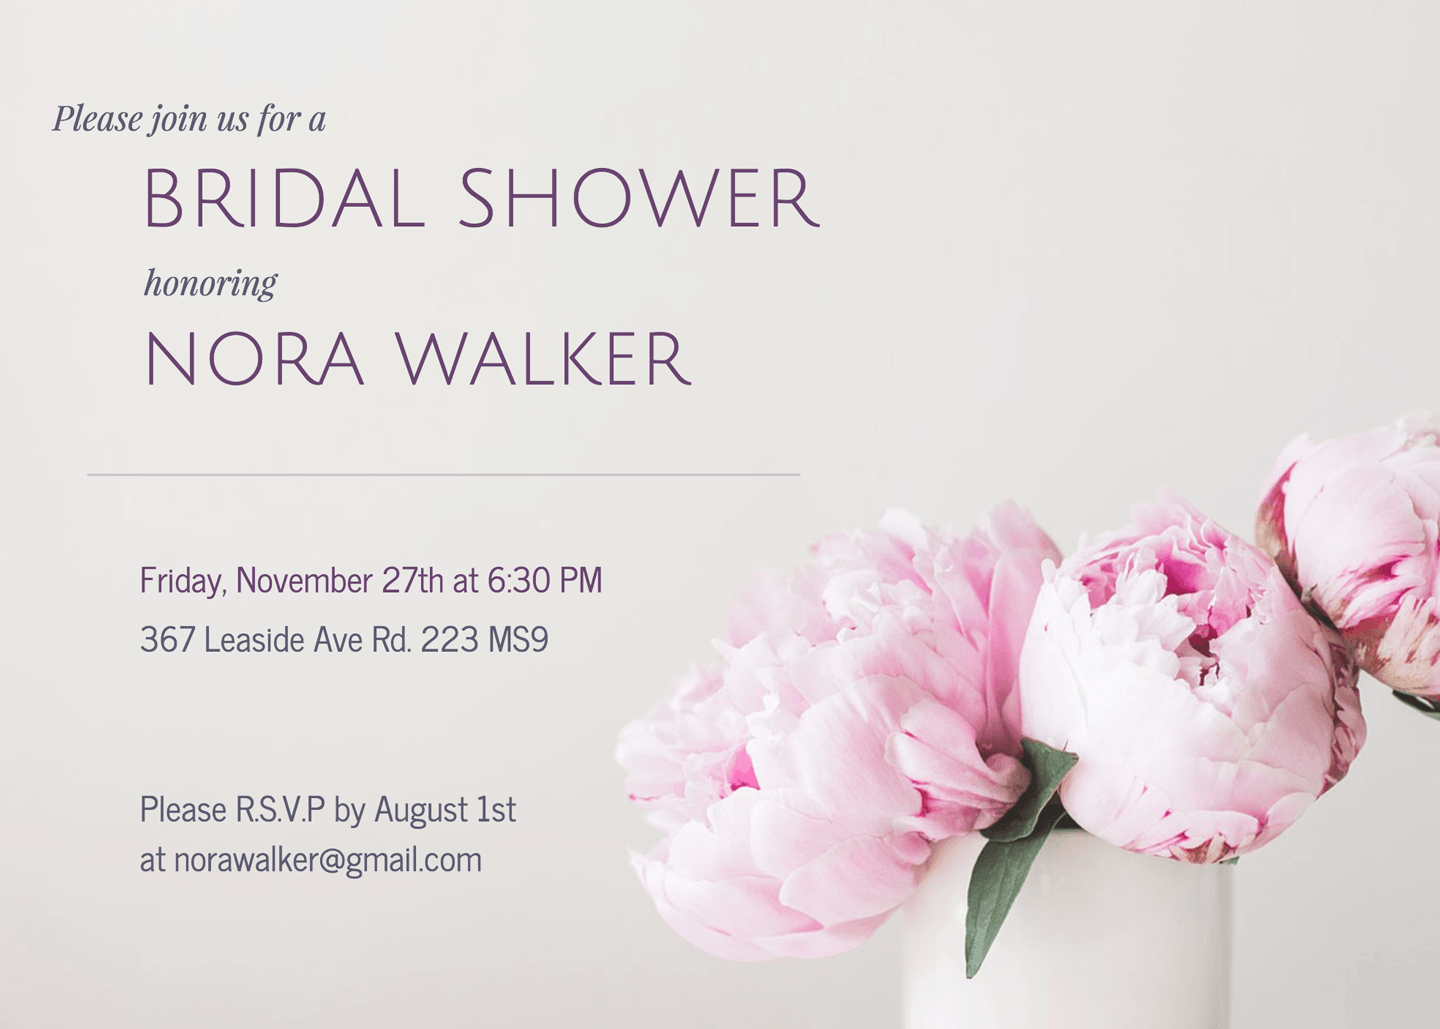 Bridal Shower Invitation Templates | Peonies Bridal Shower Invitation Template Venngage